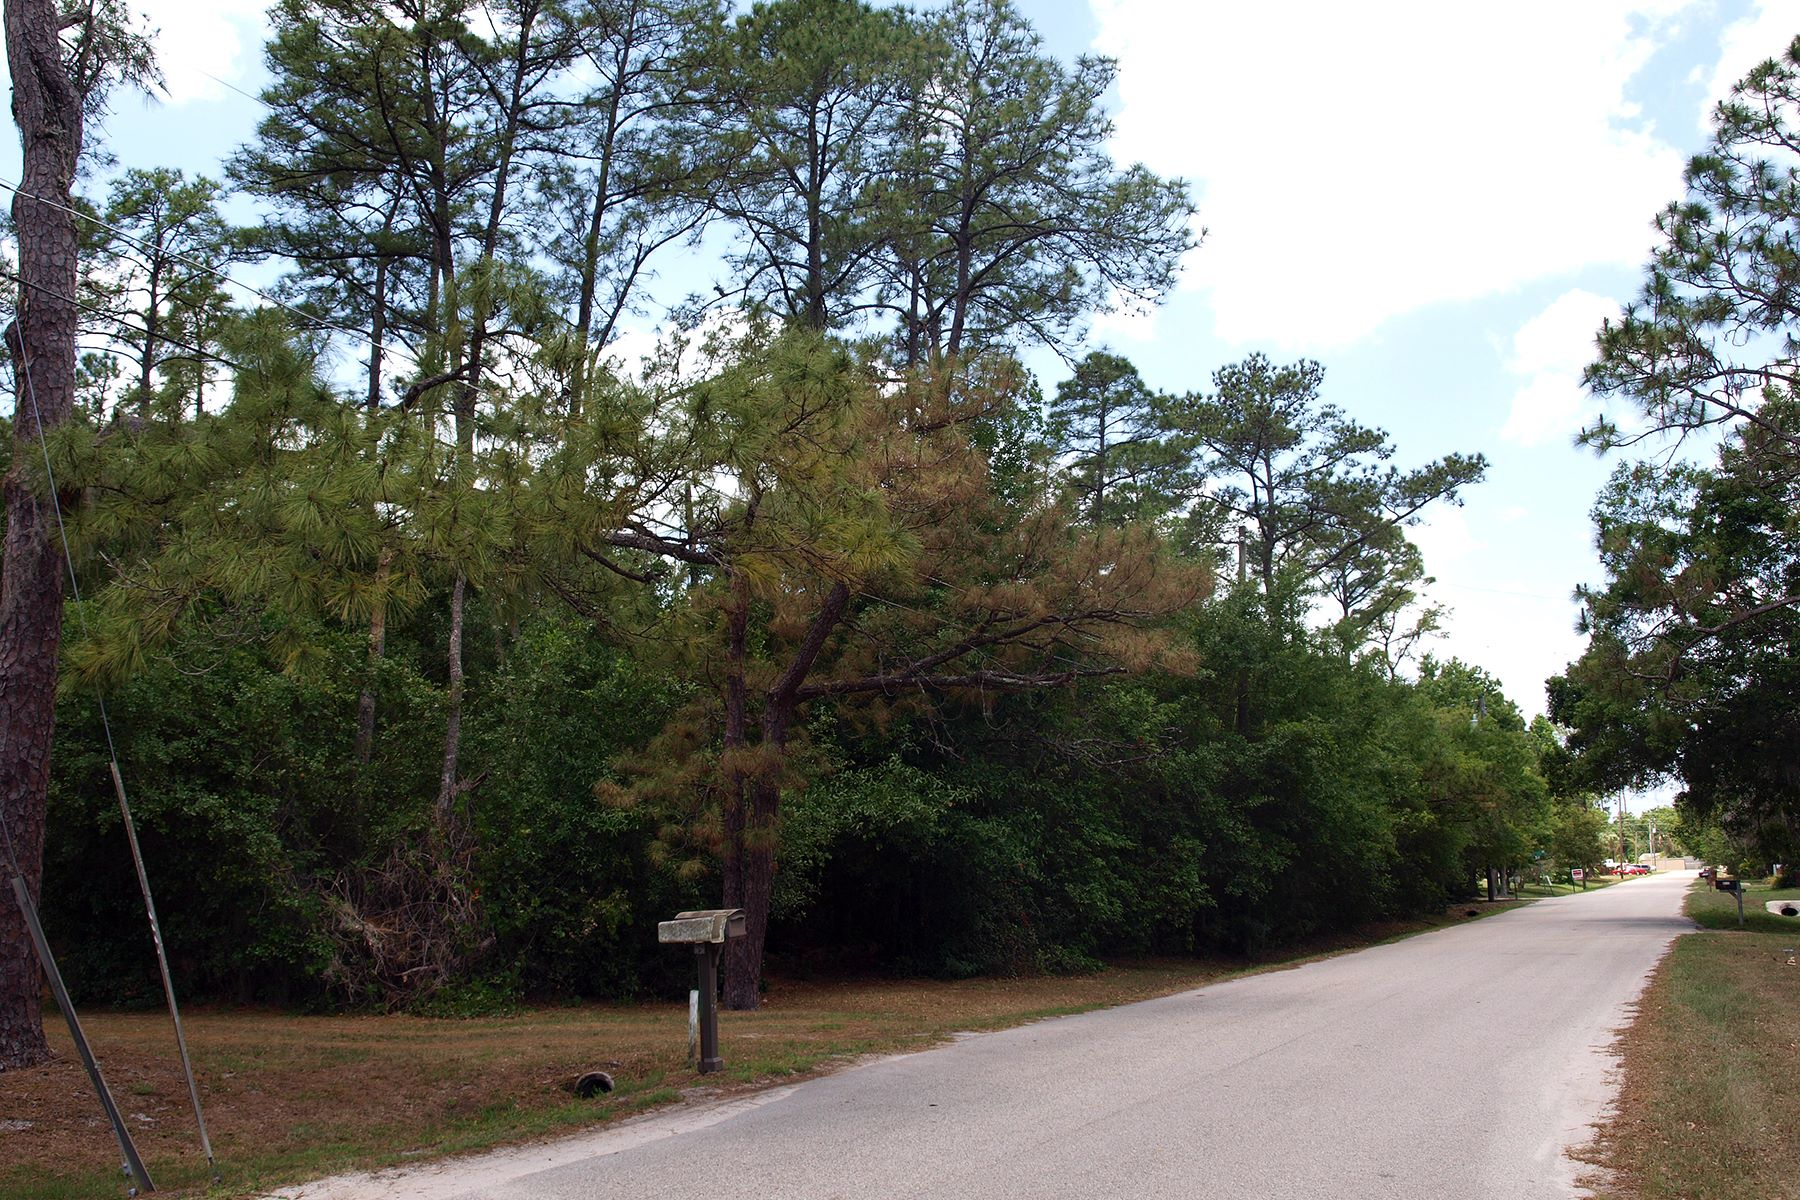 Land for Sale at ORLANDO 9124 Fryland Rd 4, Orlando, Florida 32817 United States